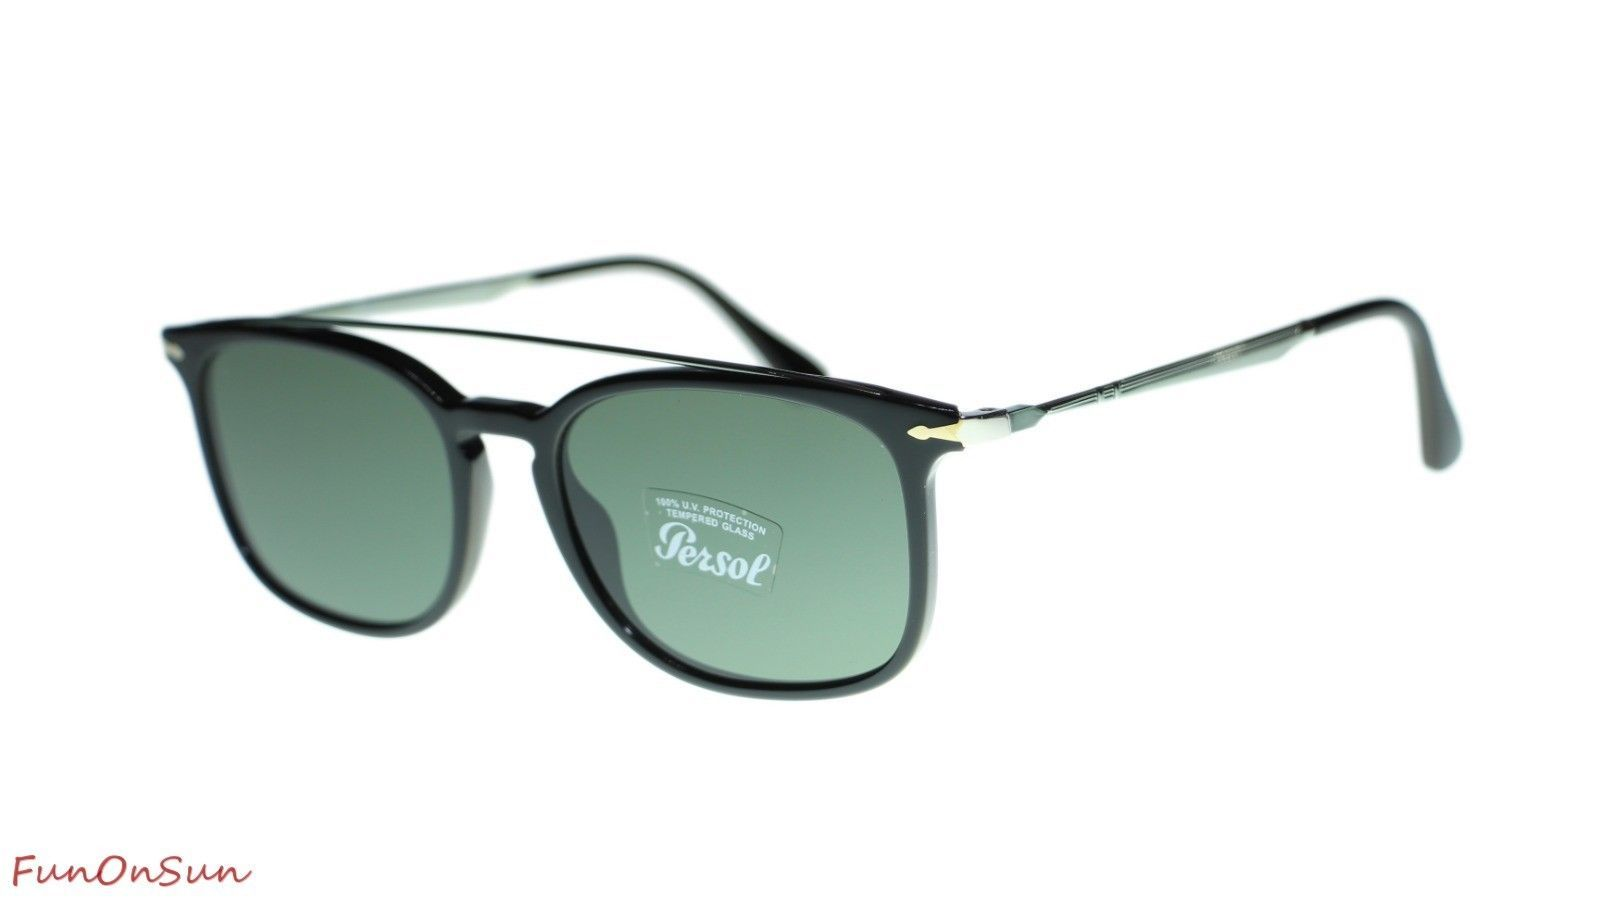 fd67148e56 Persol Mens Rectangle Sunglasses PO3173S and 50 similar items. 10